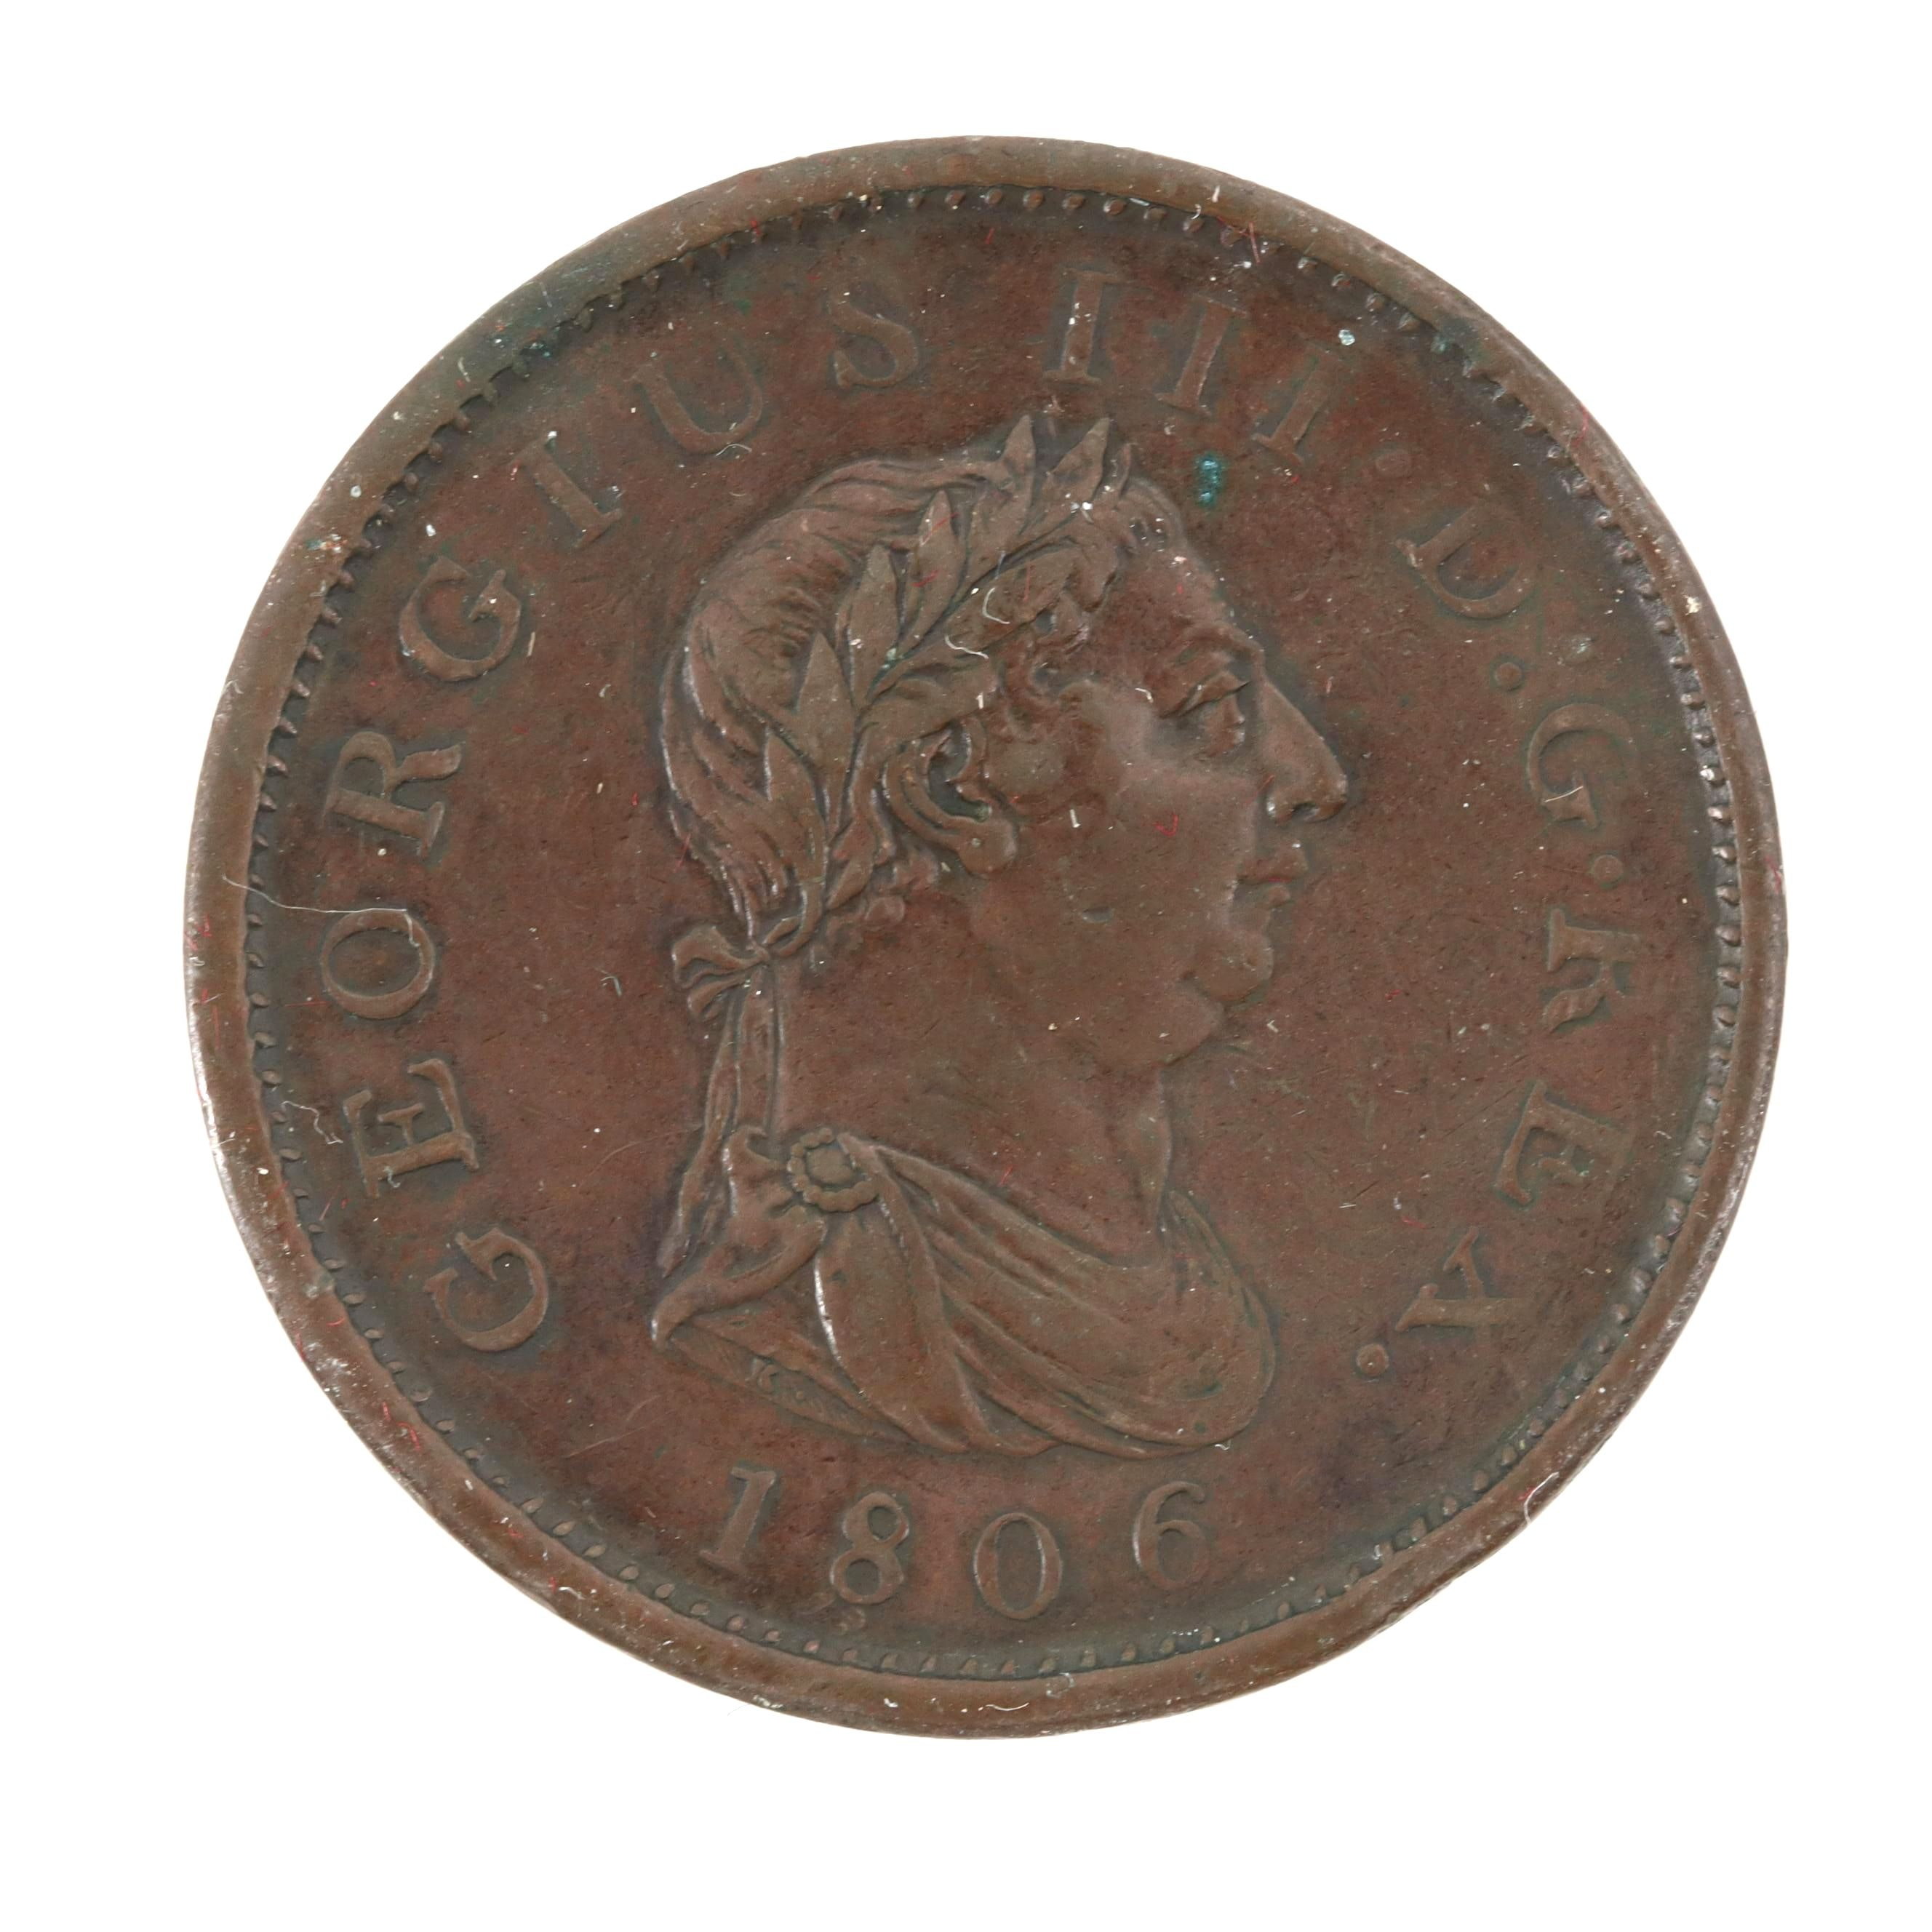 1806 Great Britain 1-Penny Copper Coin of King George III